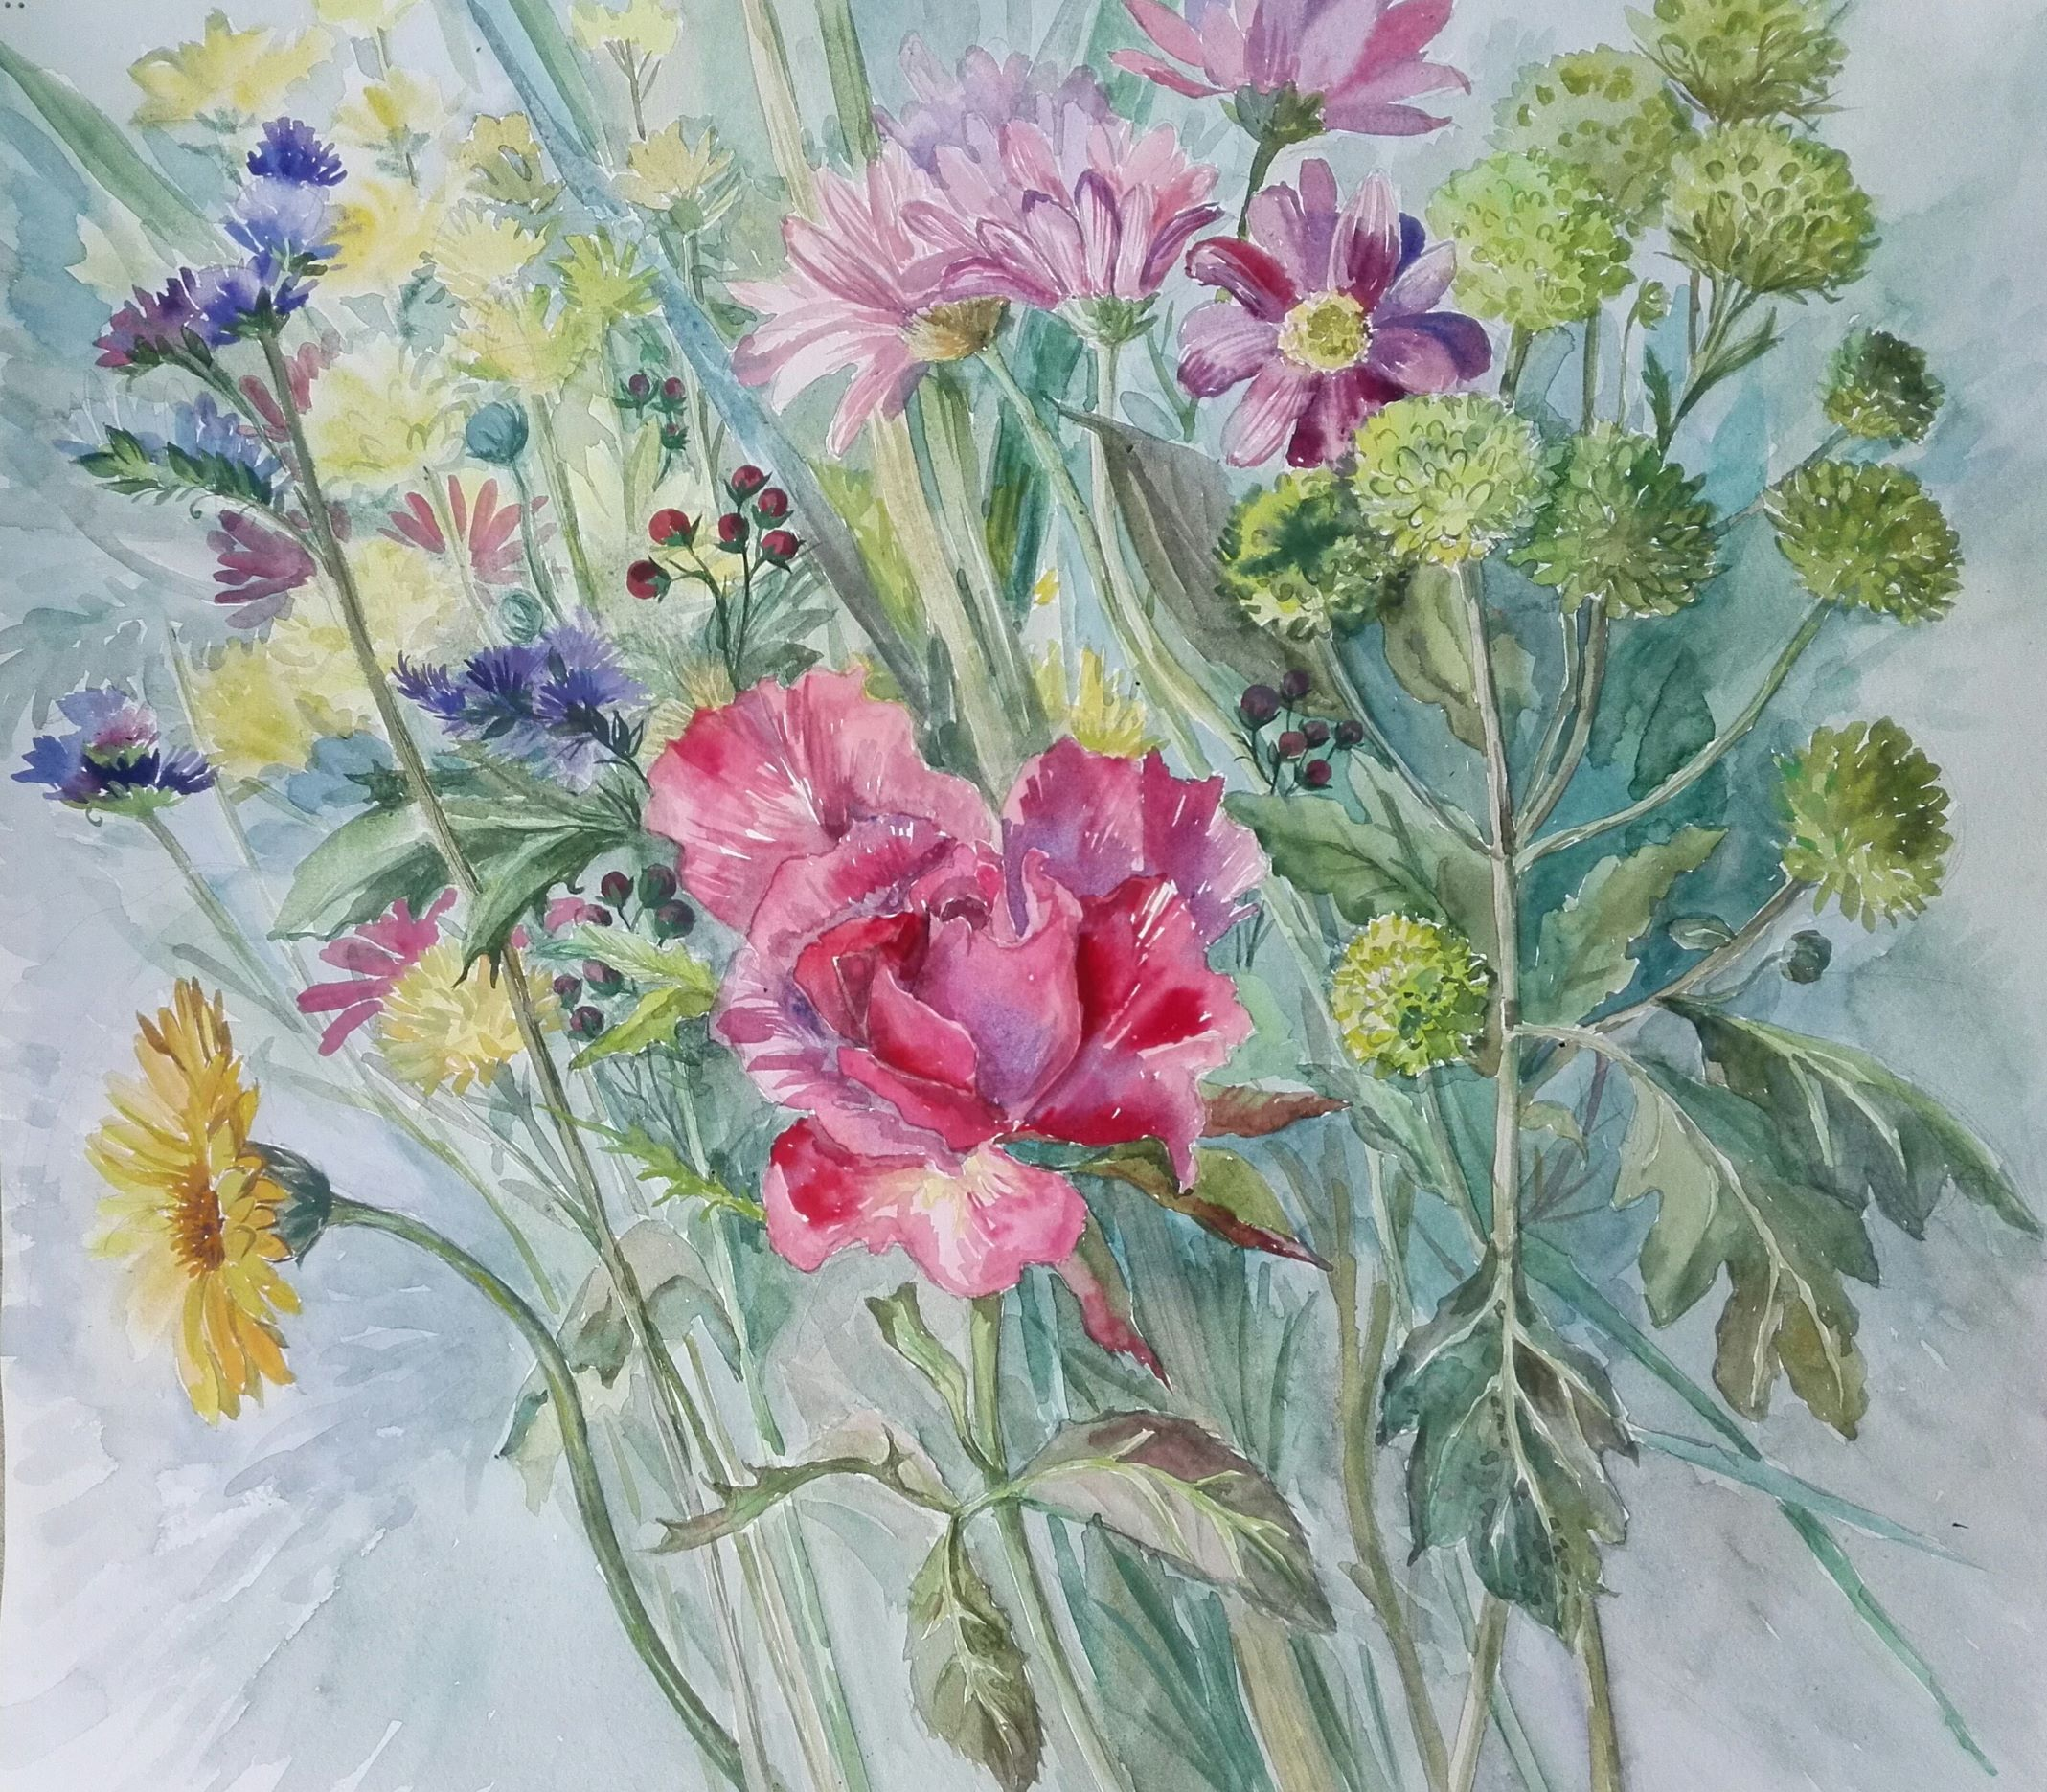 Watercolour Art Course for beginners at Magic Wool Studio in Kidderminster Worcestershire